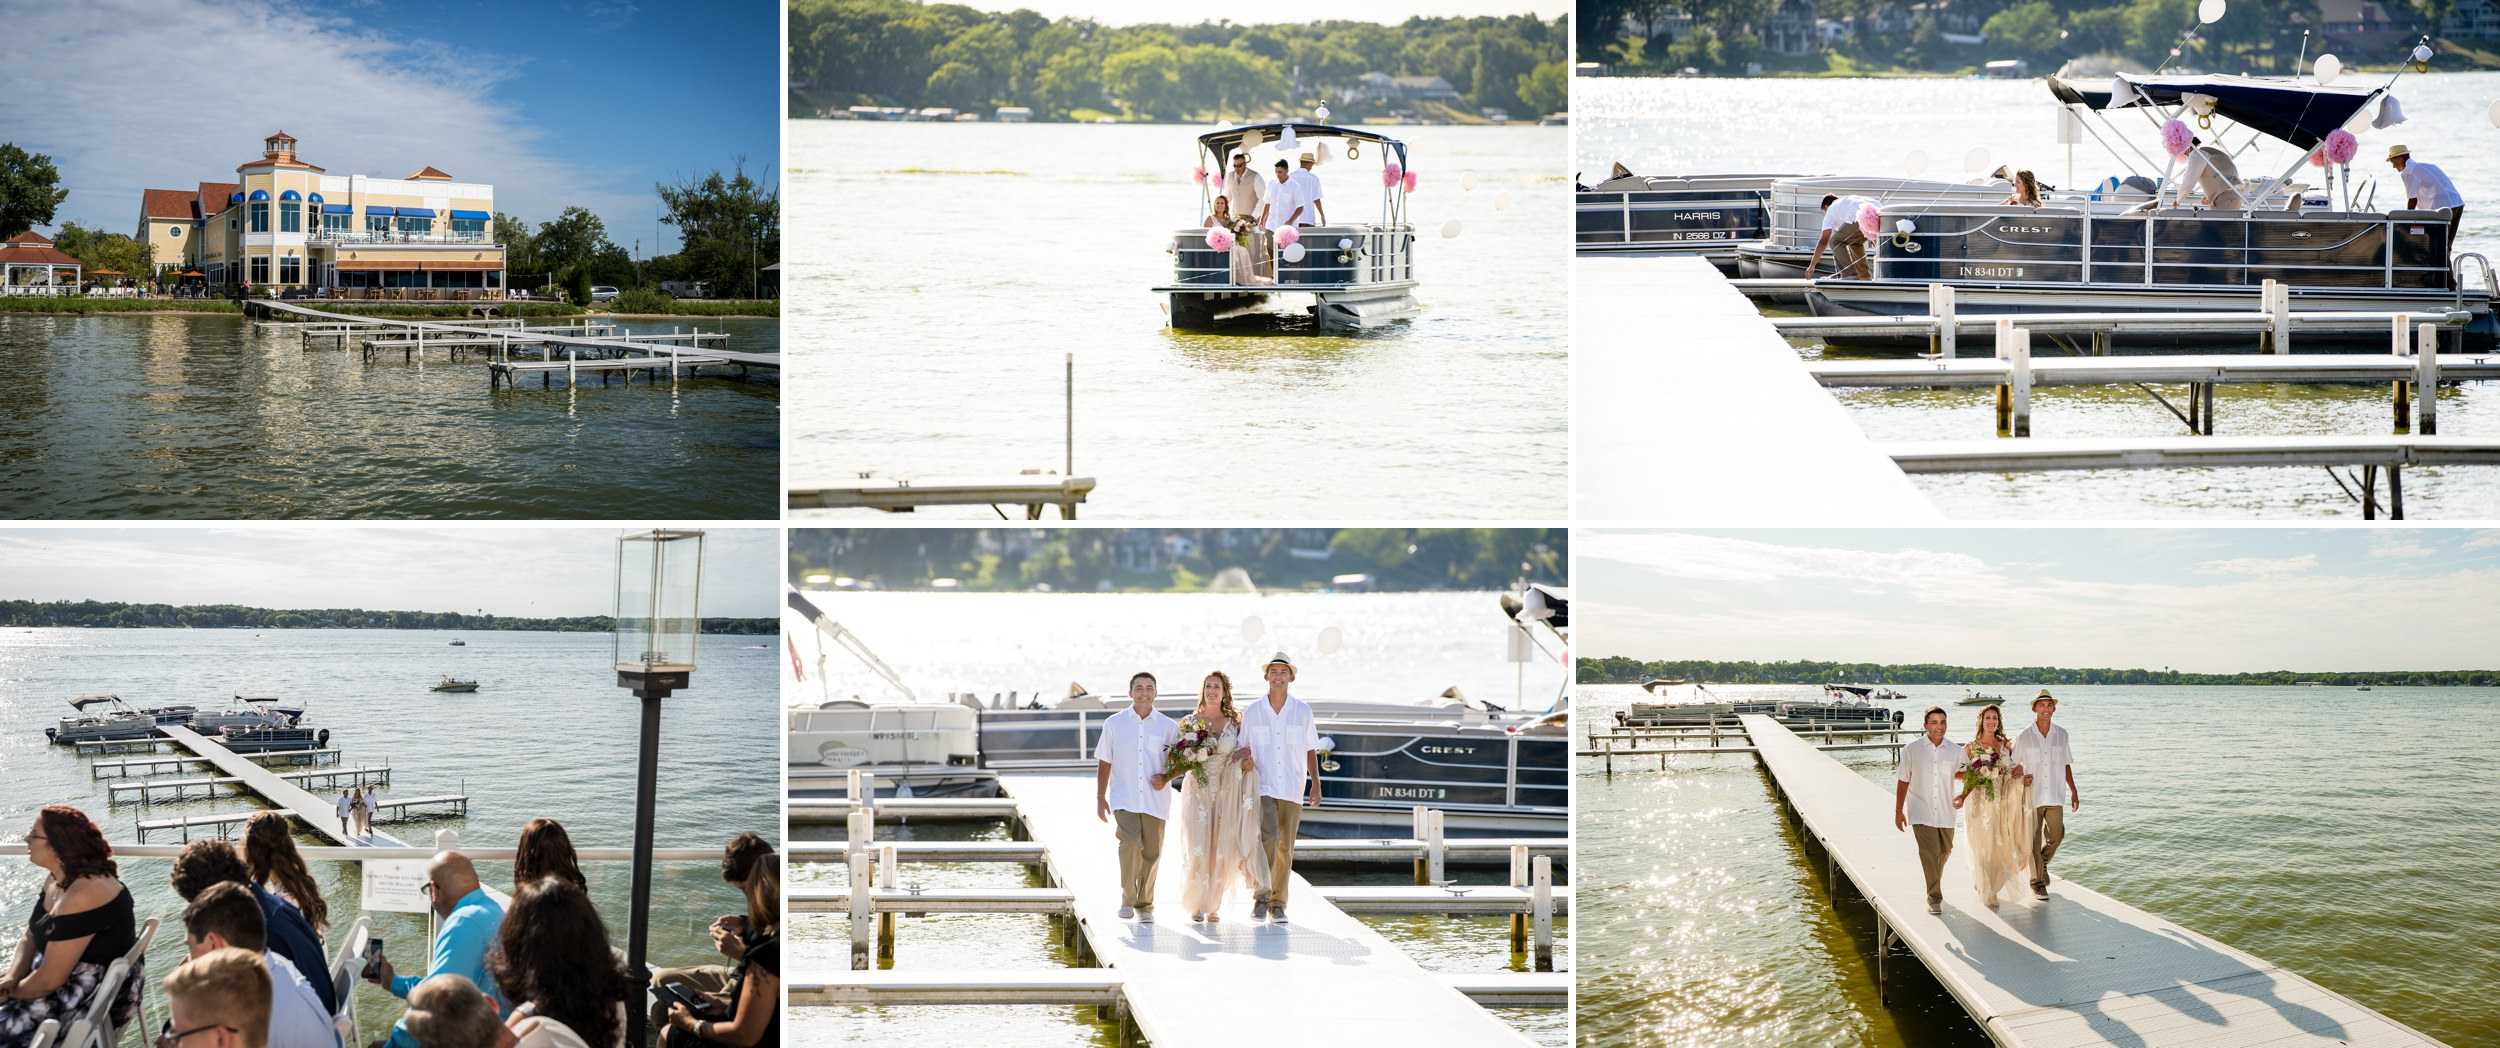 The bride arrives via boat for her summer wedding ceremony at Lighthouse Restaurant in Cedar Lake, Indiana.